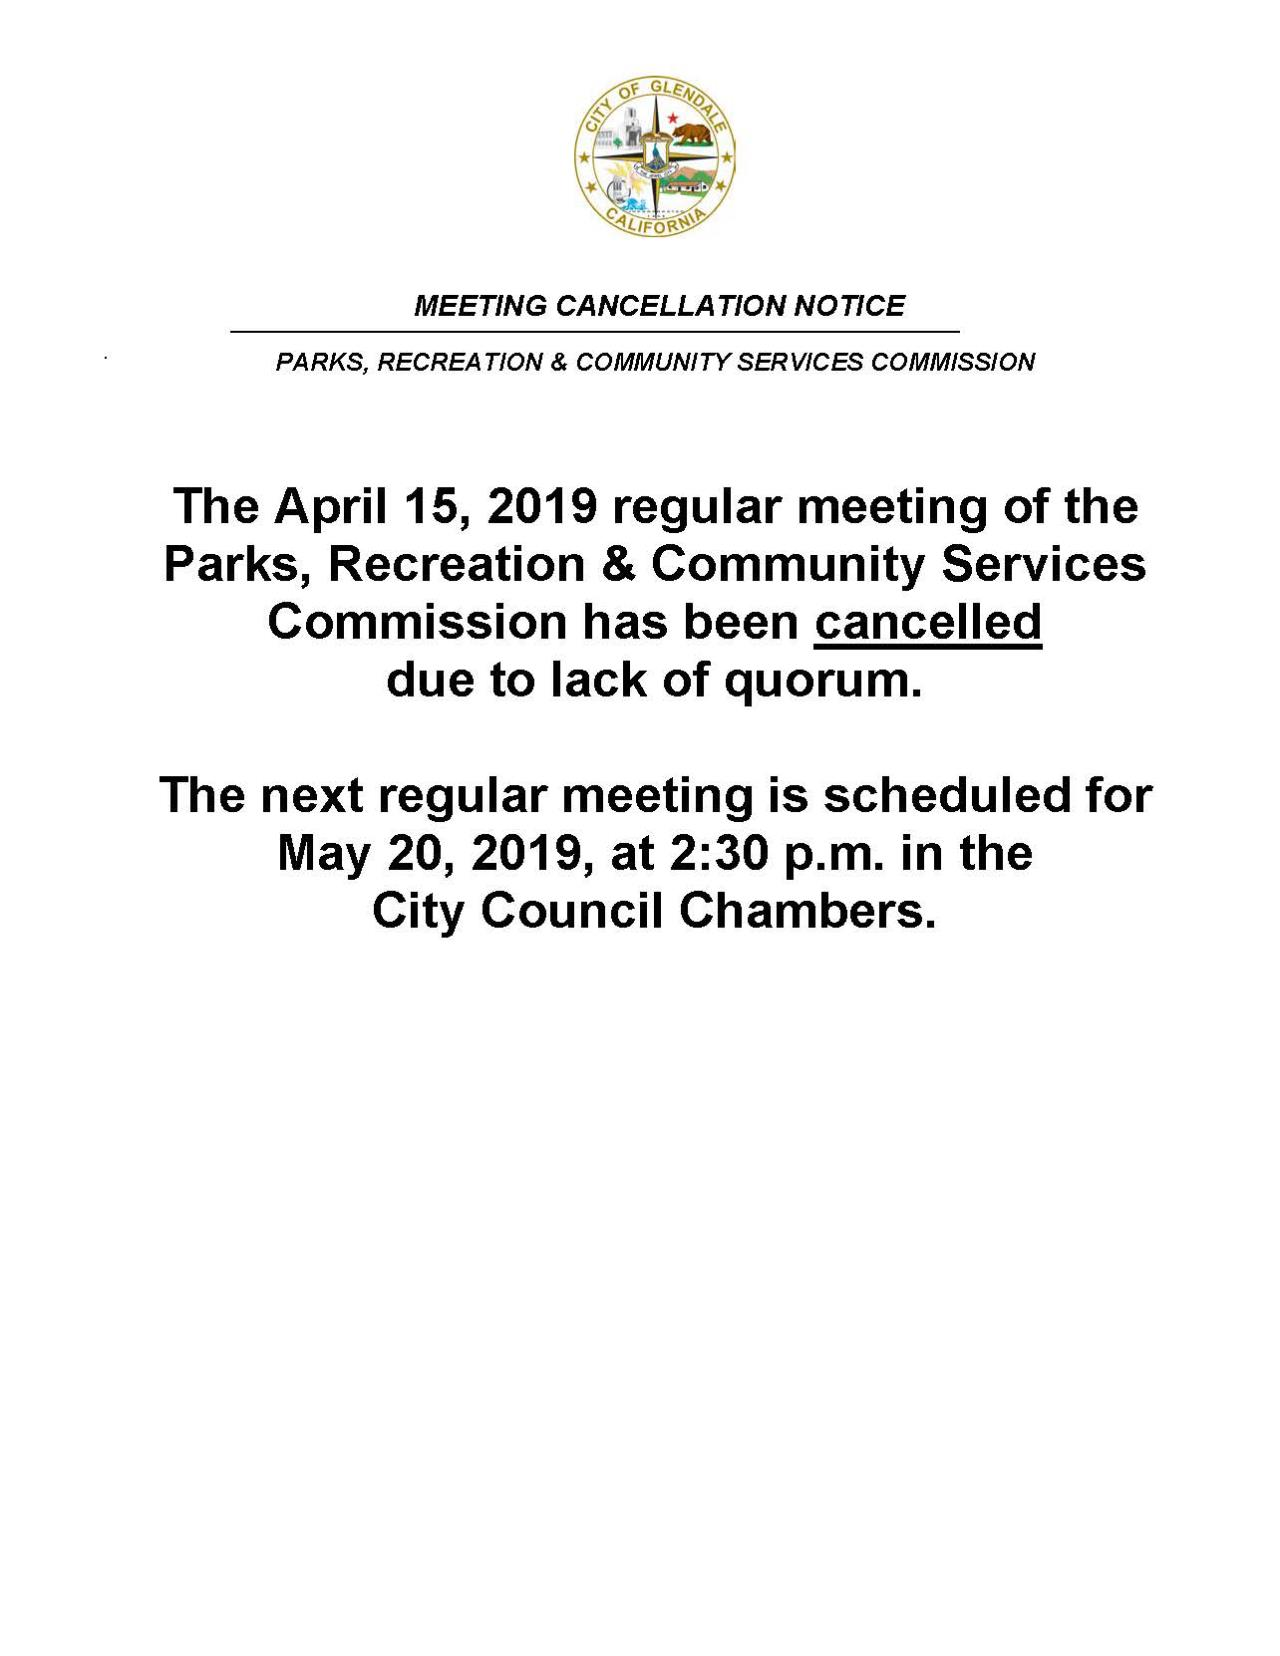 Meeting Cancellation Notice_April 15, 2019